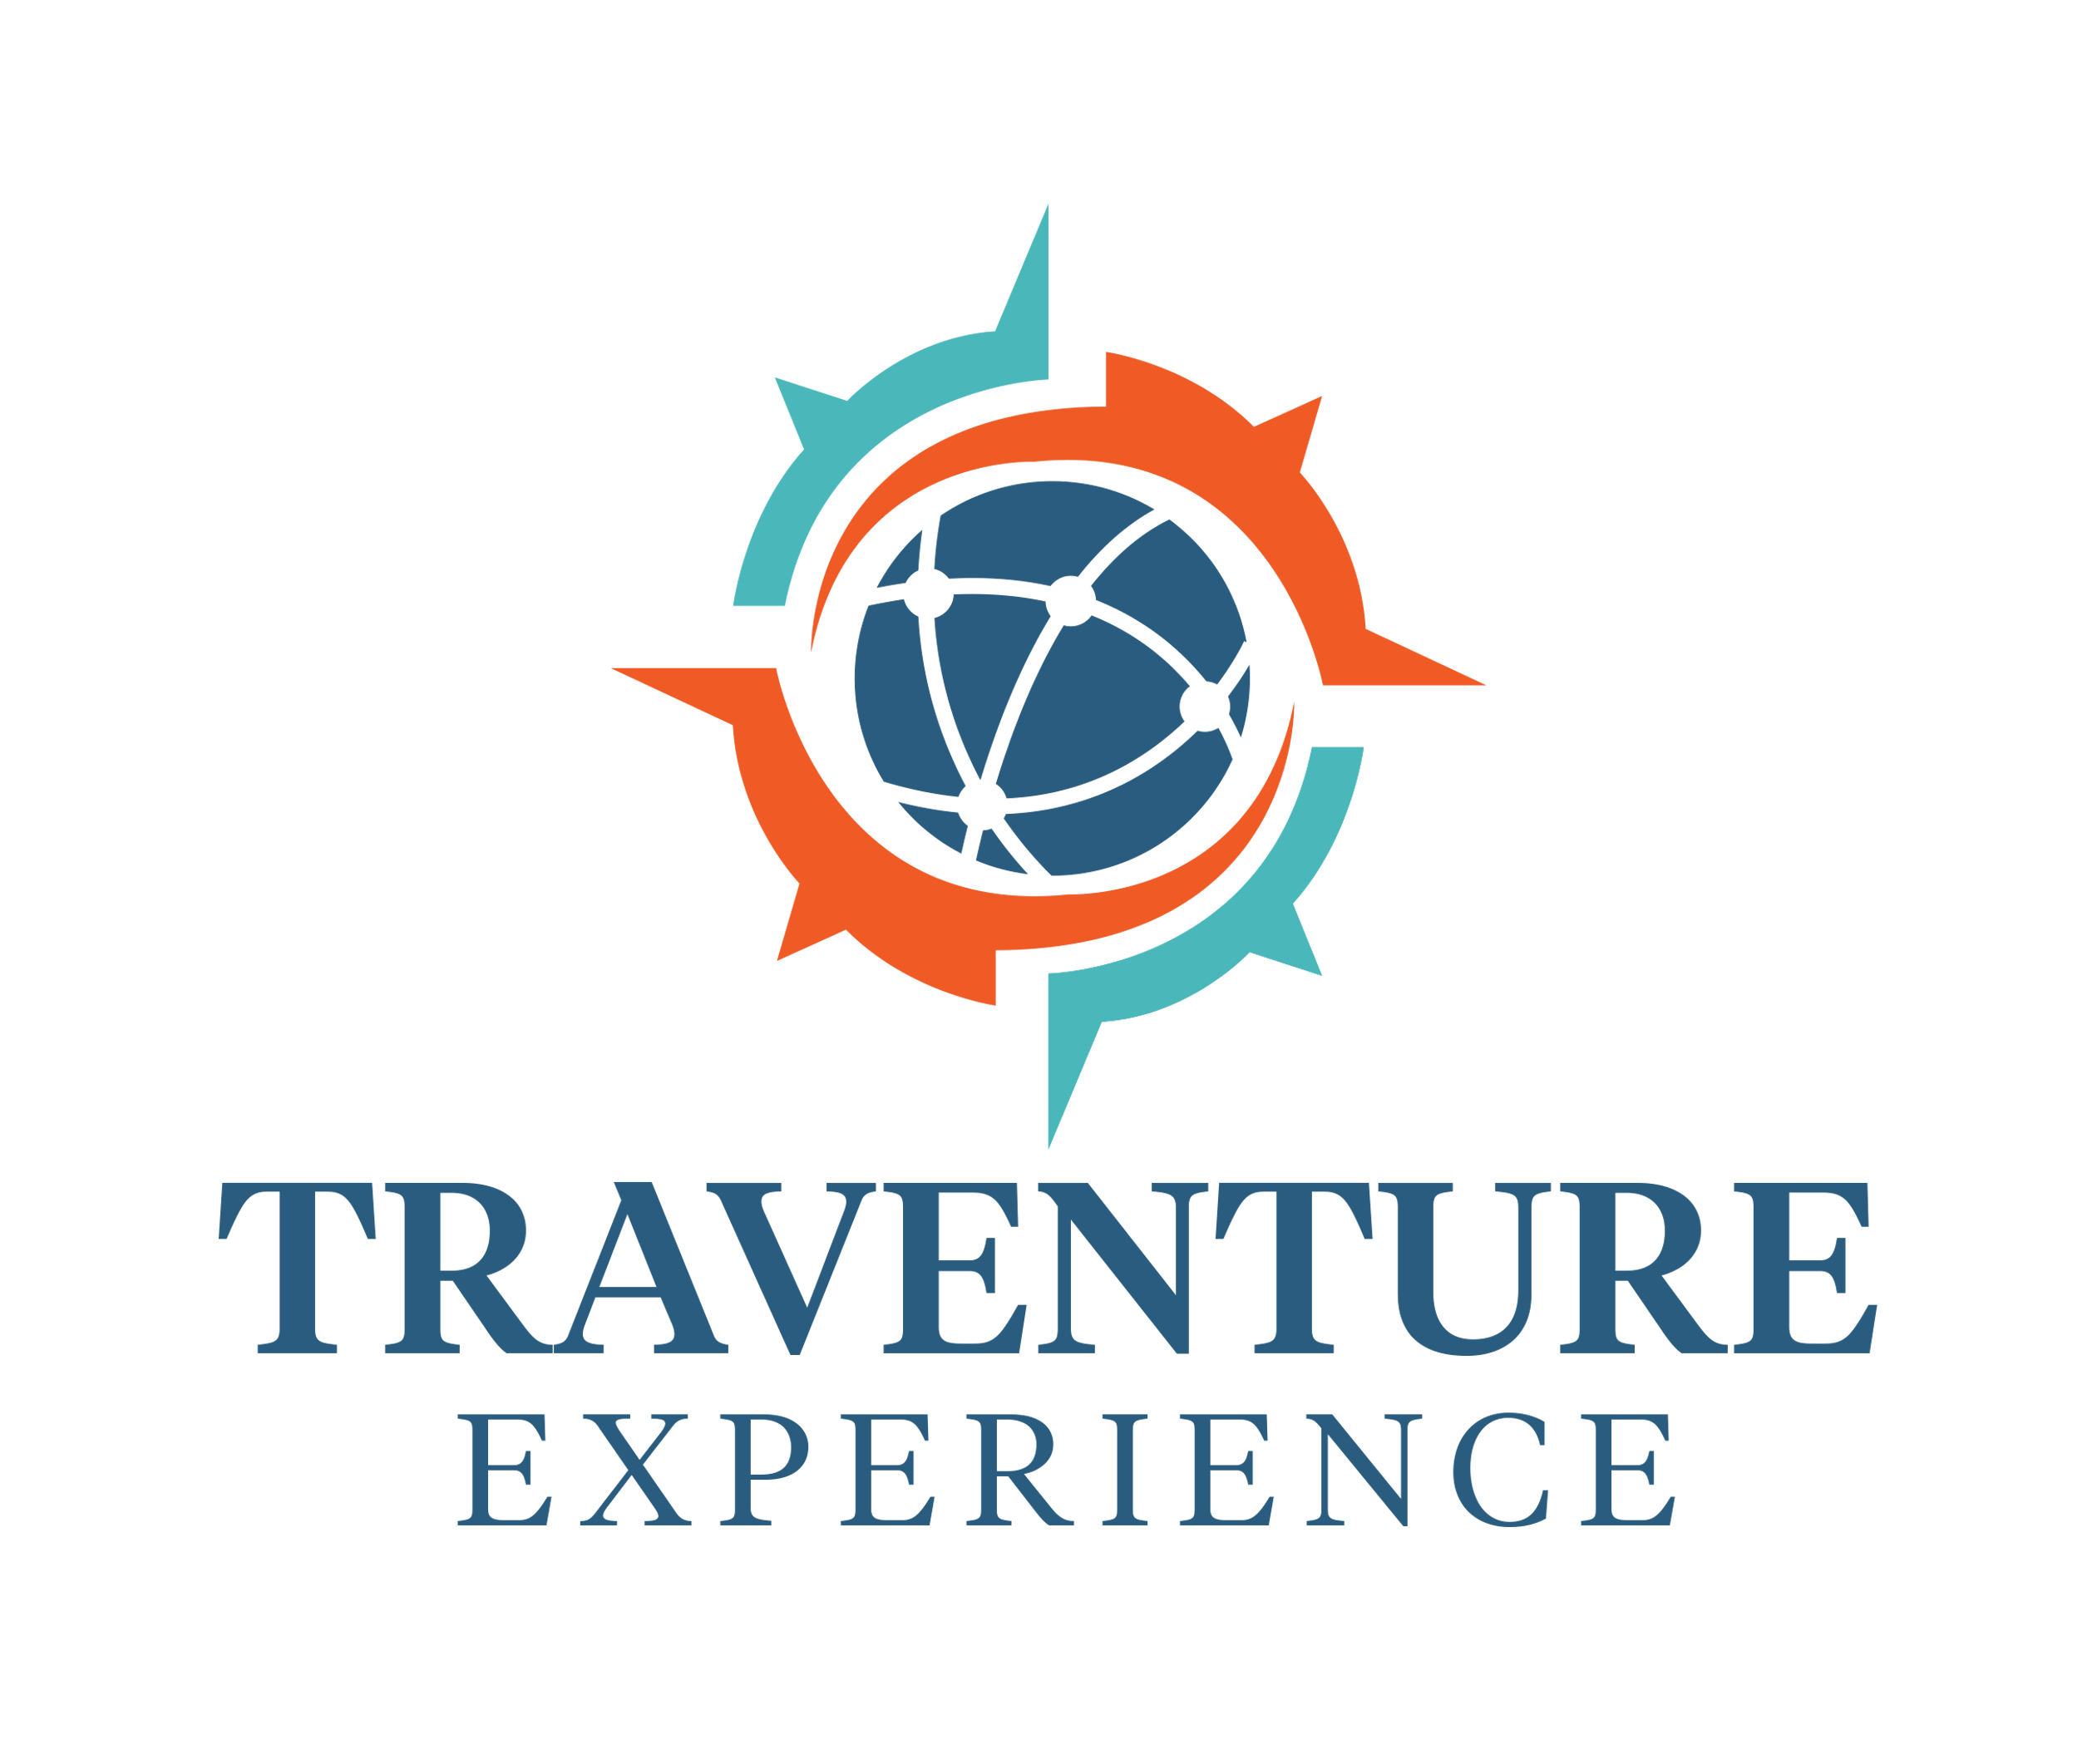 traventure-experience-png-1.png